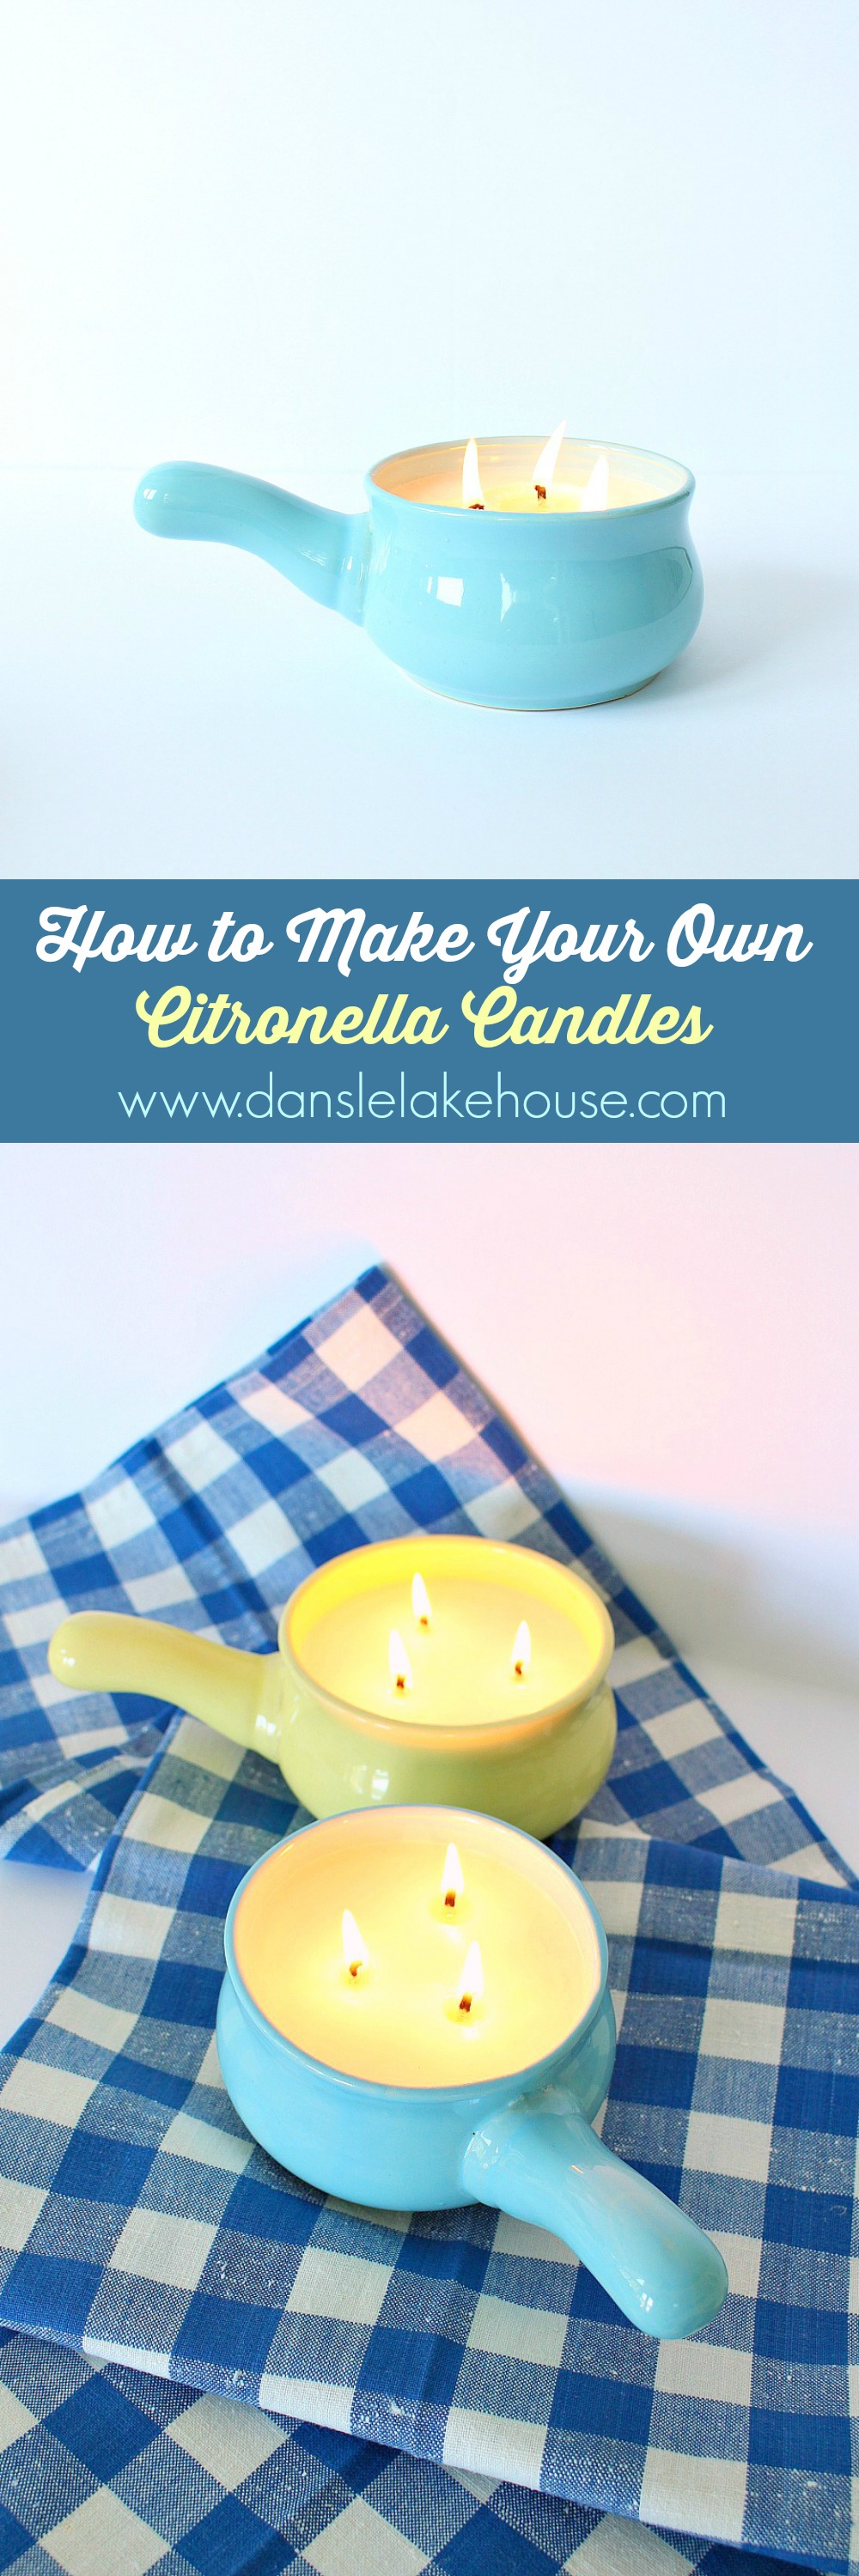 DIY Poured Soy + Citronella Oil Candles for Summer // Summer DIY Projects